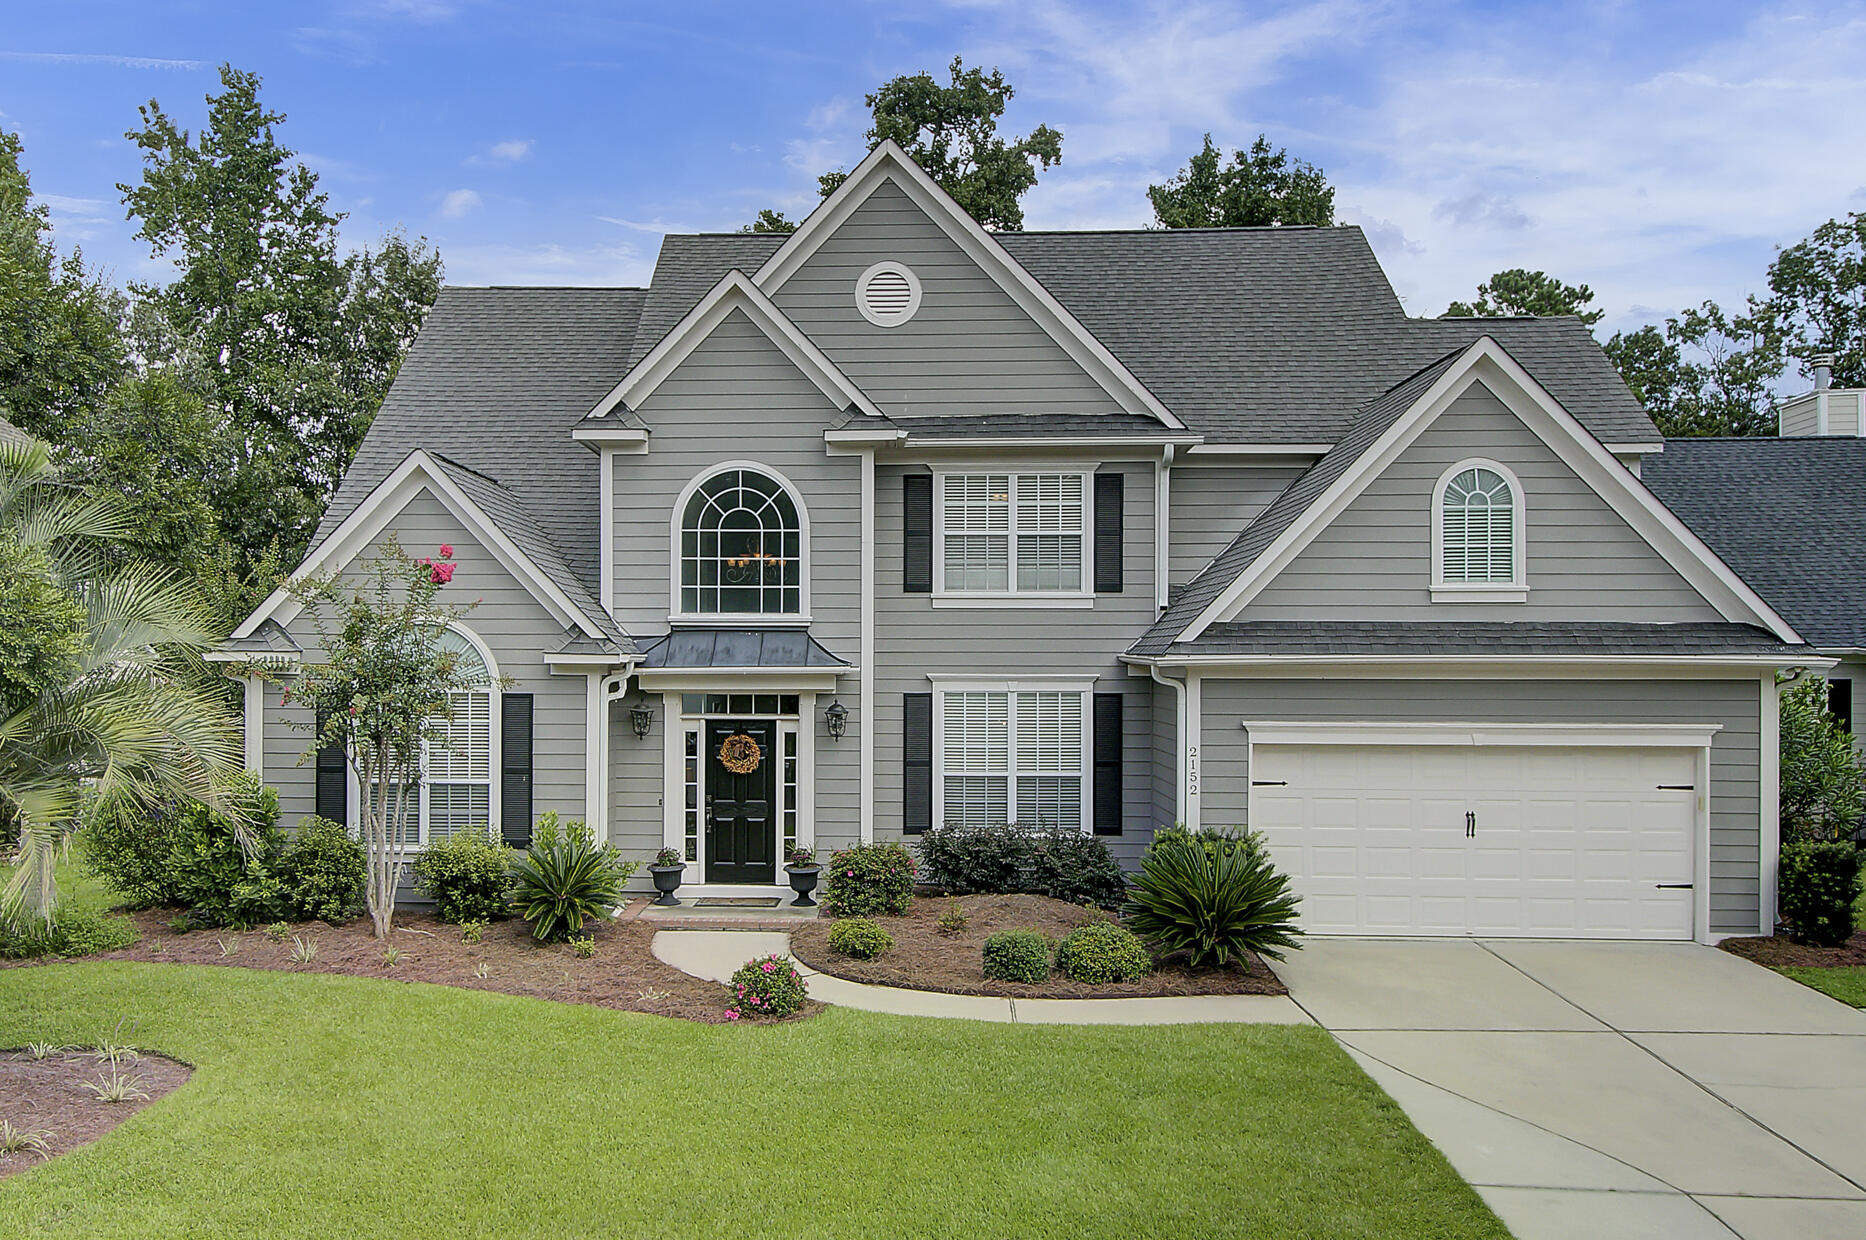 There's no doubt, these owners have meticulously cared for this home during their time here and it shows, but this beautiful and tastefully updated Lowcountry home is ready for new owners! Located in the Whispering Marsh subsection of Dunes West, the 4 BR, 2.5 BA home has 3100 sqft and sits on 1/5 of an acre overlooking a quiet pond that is nestled up against protected woods and wetlands of Wagner Creek. Updates abound like all new interior paint, owner's suite hardwood flooring, tankless hot water heater, Garapa hardwood decking, shiplap accent walls, wainscoting, custom built-ins, light fixtures and mirrors, door hardware and hinges, plumbing, and more! The floor plan is perfect for nearly any situation including on-the-go families and those who like to entertain occasional guests and host long-term visitors! The large owner's suite with a raised tray ceiling is located downstairs at the rear of the house for added privacy, but there is also a family room, eat-in kitchen with granite counters and stainless steel appliances, pantry, formal dining room, private office/study with French doors, powder room, and laundry room on the first floor. Upstairs, there are 3 more bedrooms that share a hall bath and a huge loft/bonus room with endless possibilities! Two of the bedrooms have enclosed attic space for added storage as well. Nicely landscaped and manicured with plenty of foliage, a sizable deck newly outfitted with Ipe-like Garapa hardwood, and a painted screened porch (including classic Charleston Haint Blue on the ceiling), the fully fenced and very private backyard is the perfect place to unwind after a long day. Along with an extra-wide driveway to satisfy additional parking needs, there is an attached 2-car garage to store all the tools and toys! Recently remapped by FEMA to an X flood zone, therefore, no flood insurance required! See the attached Feature Sheet in Documents section for a full list of updates!Dunes West offers varying levels of club membership f